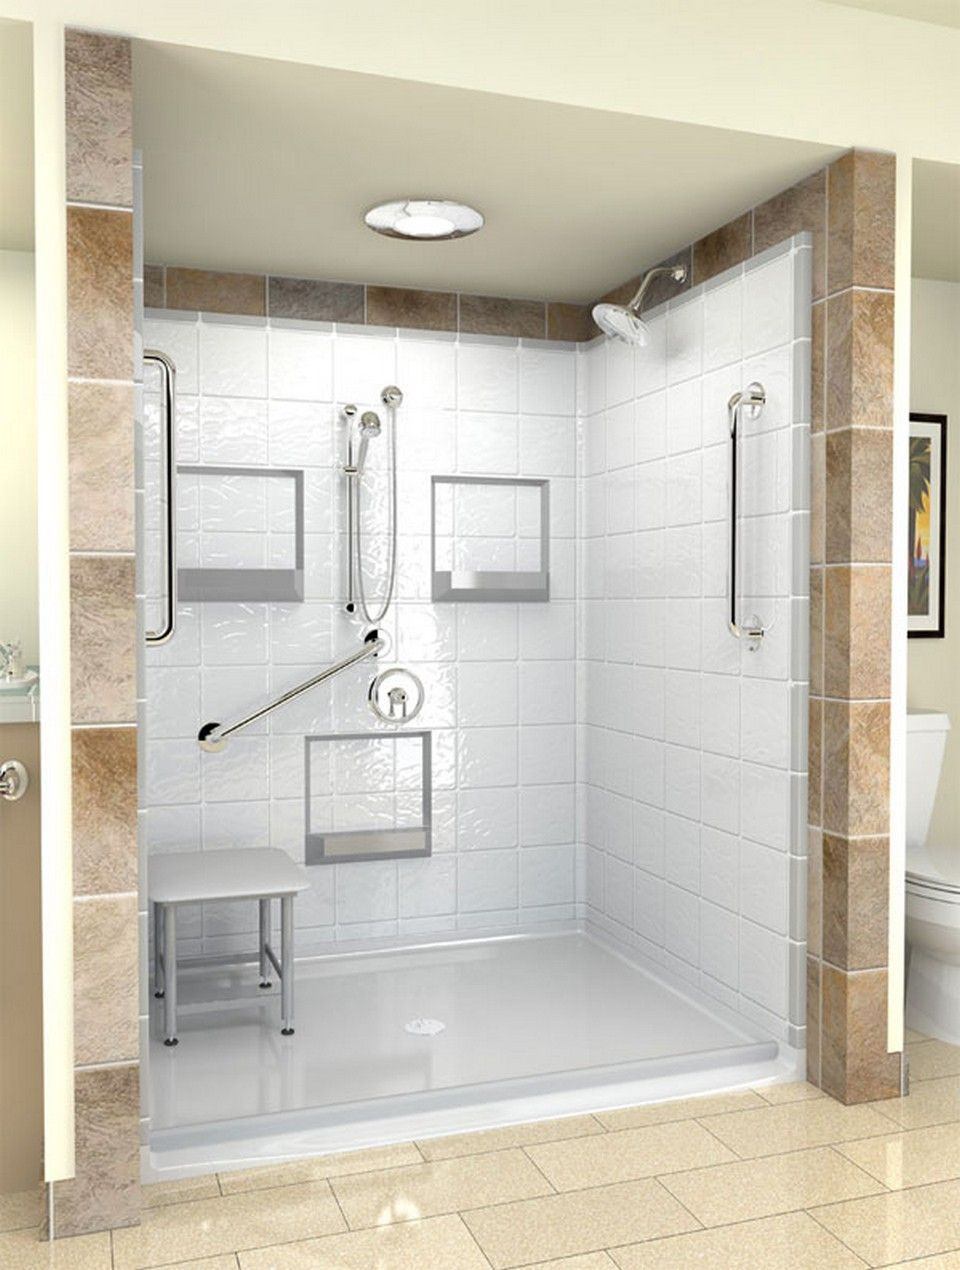 nice 99 cool wheelchair accessible bathroom design http://www